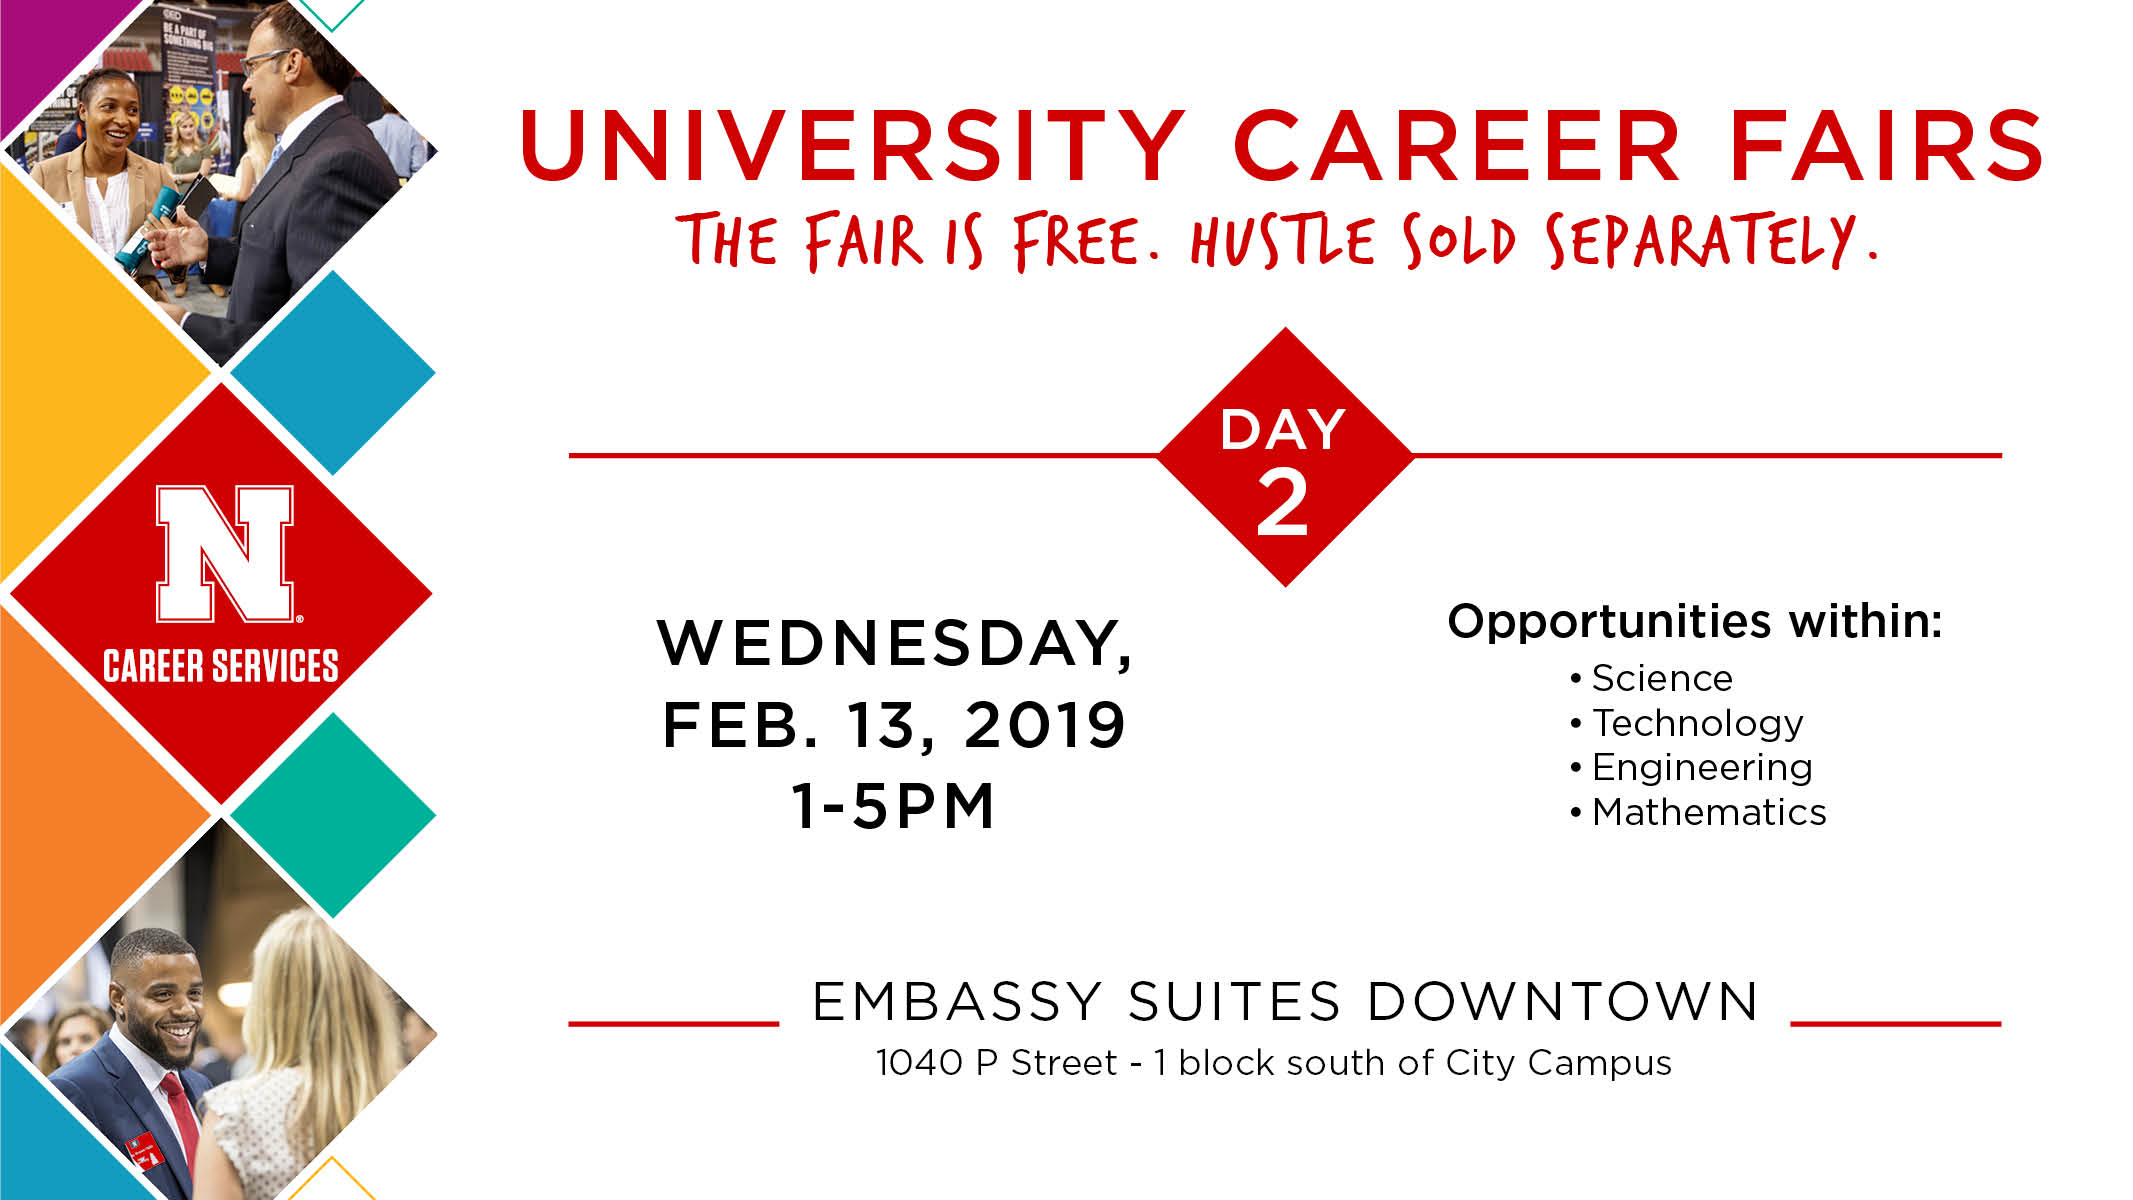 Spring STEM Career Fair is Wednesday, Feb. 13 at Embassy Suites Downtown.